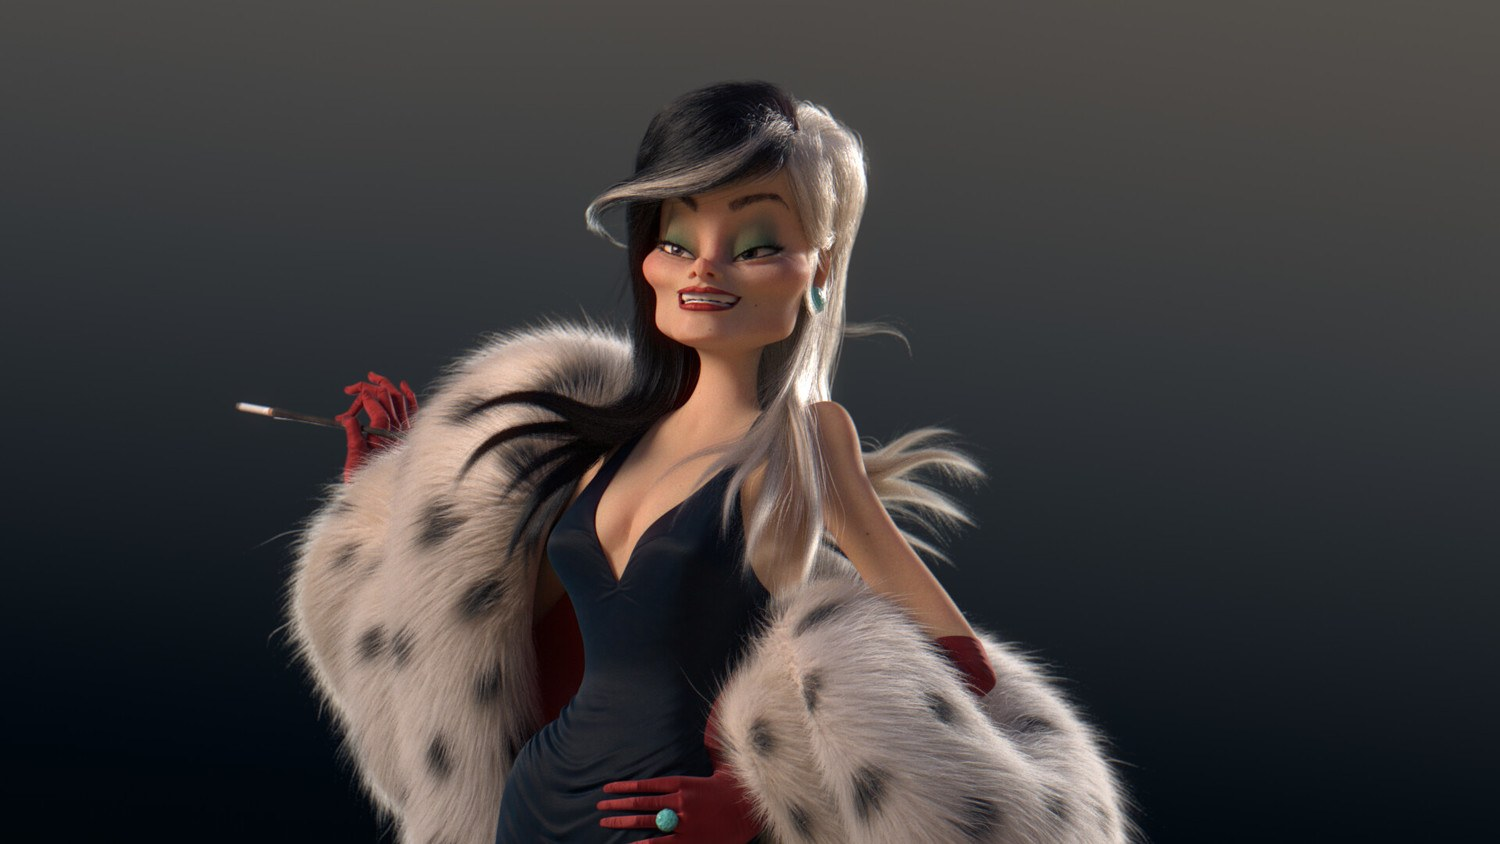 Mathilde cartoon 3D characters